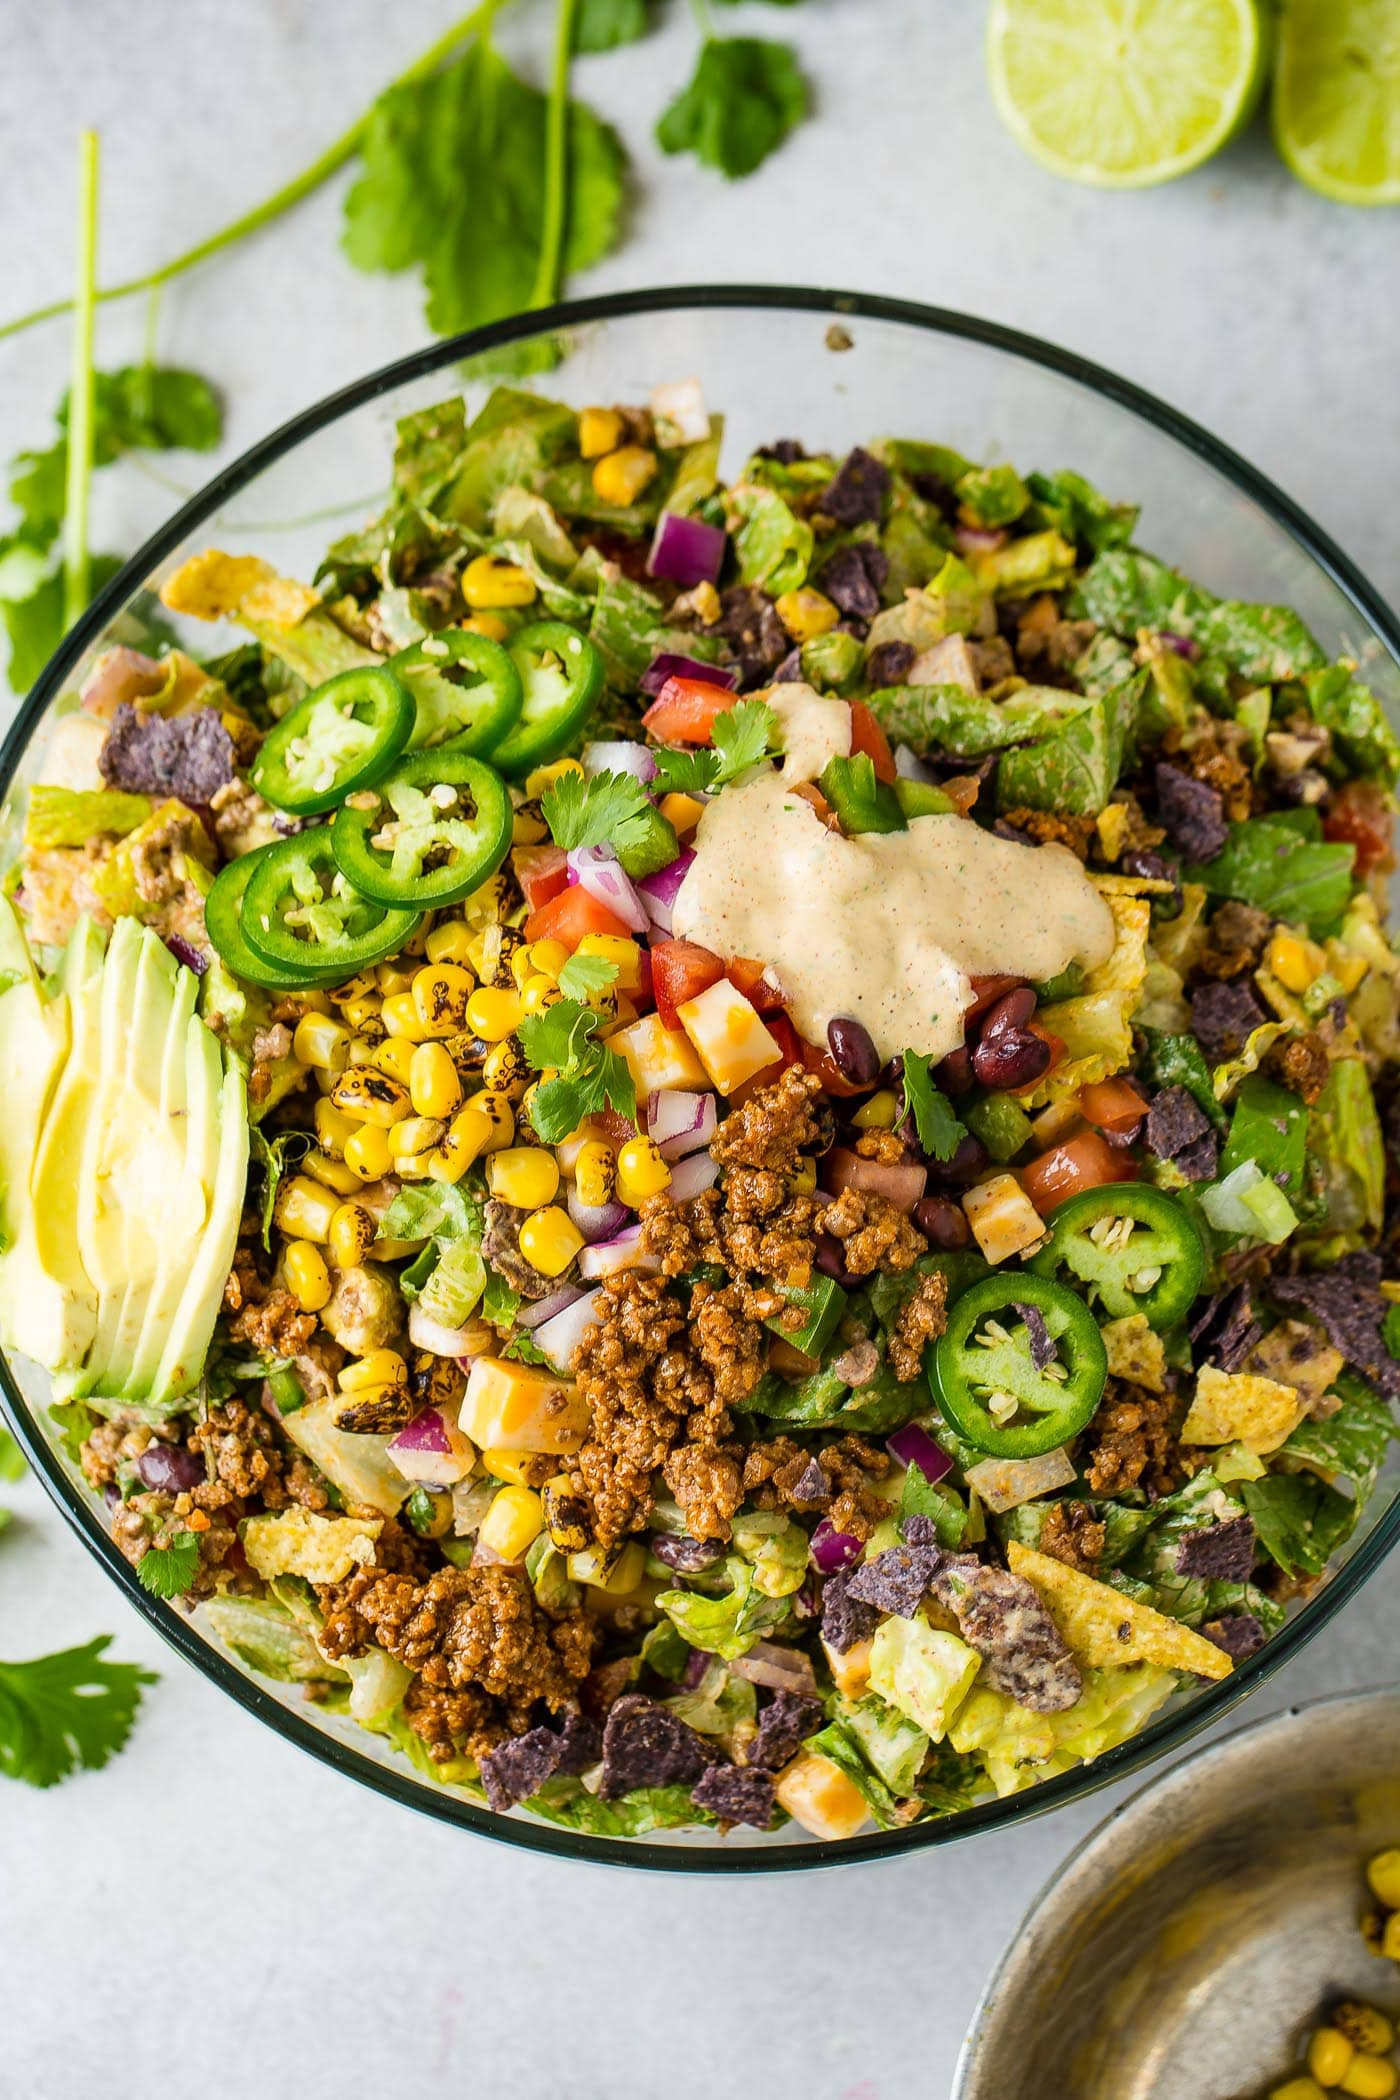 A top view of a large glass bowl of tex-mex taco salad. It is loaded with lettuce, corn, avocado, tomatillas and taco meat. There is a little dressing poured in the top part of the salad.